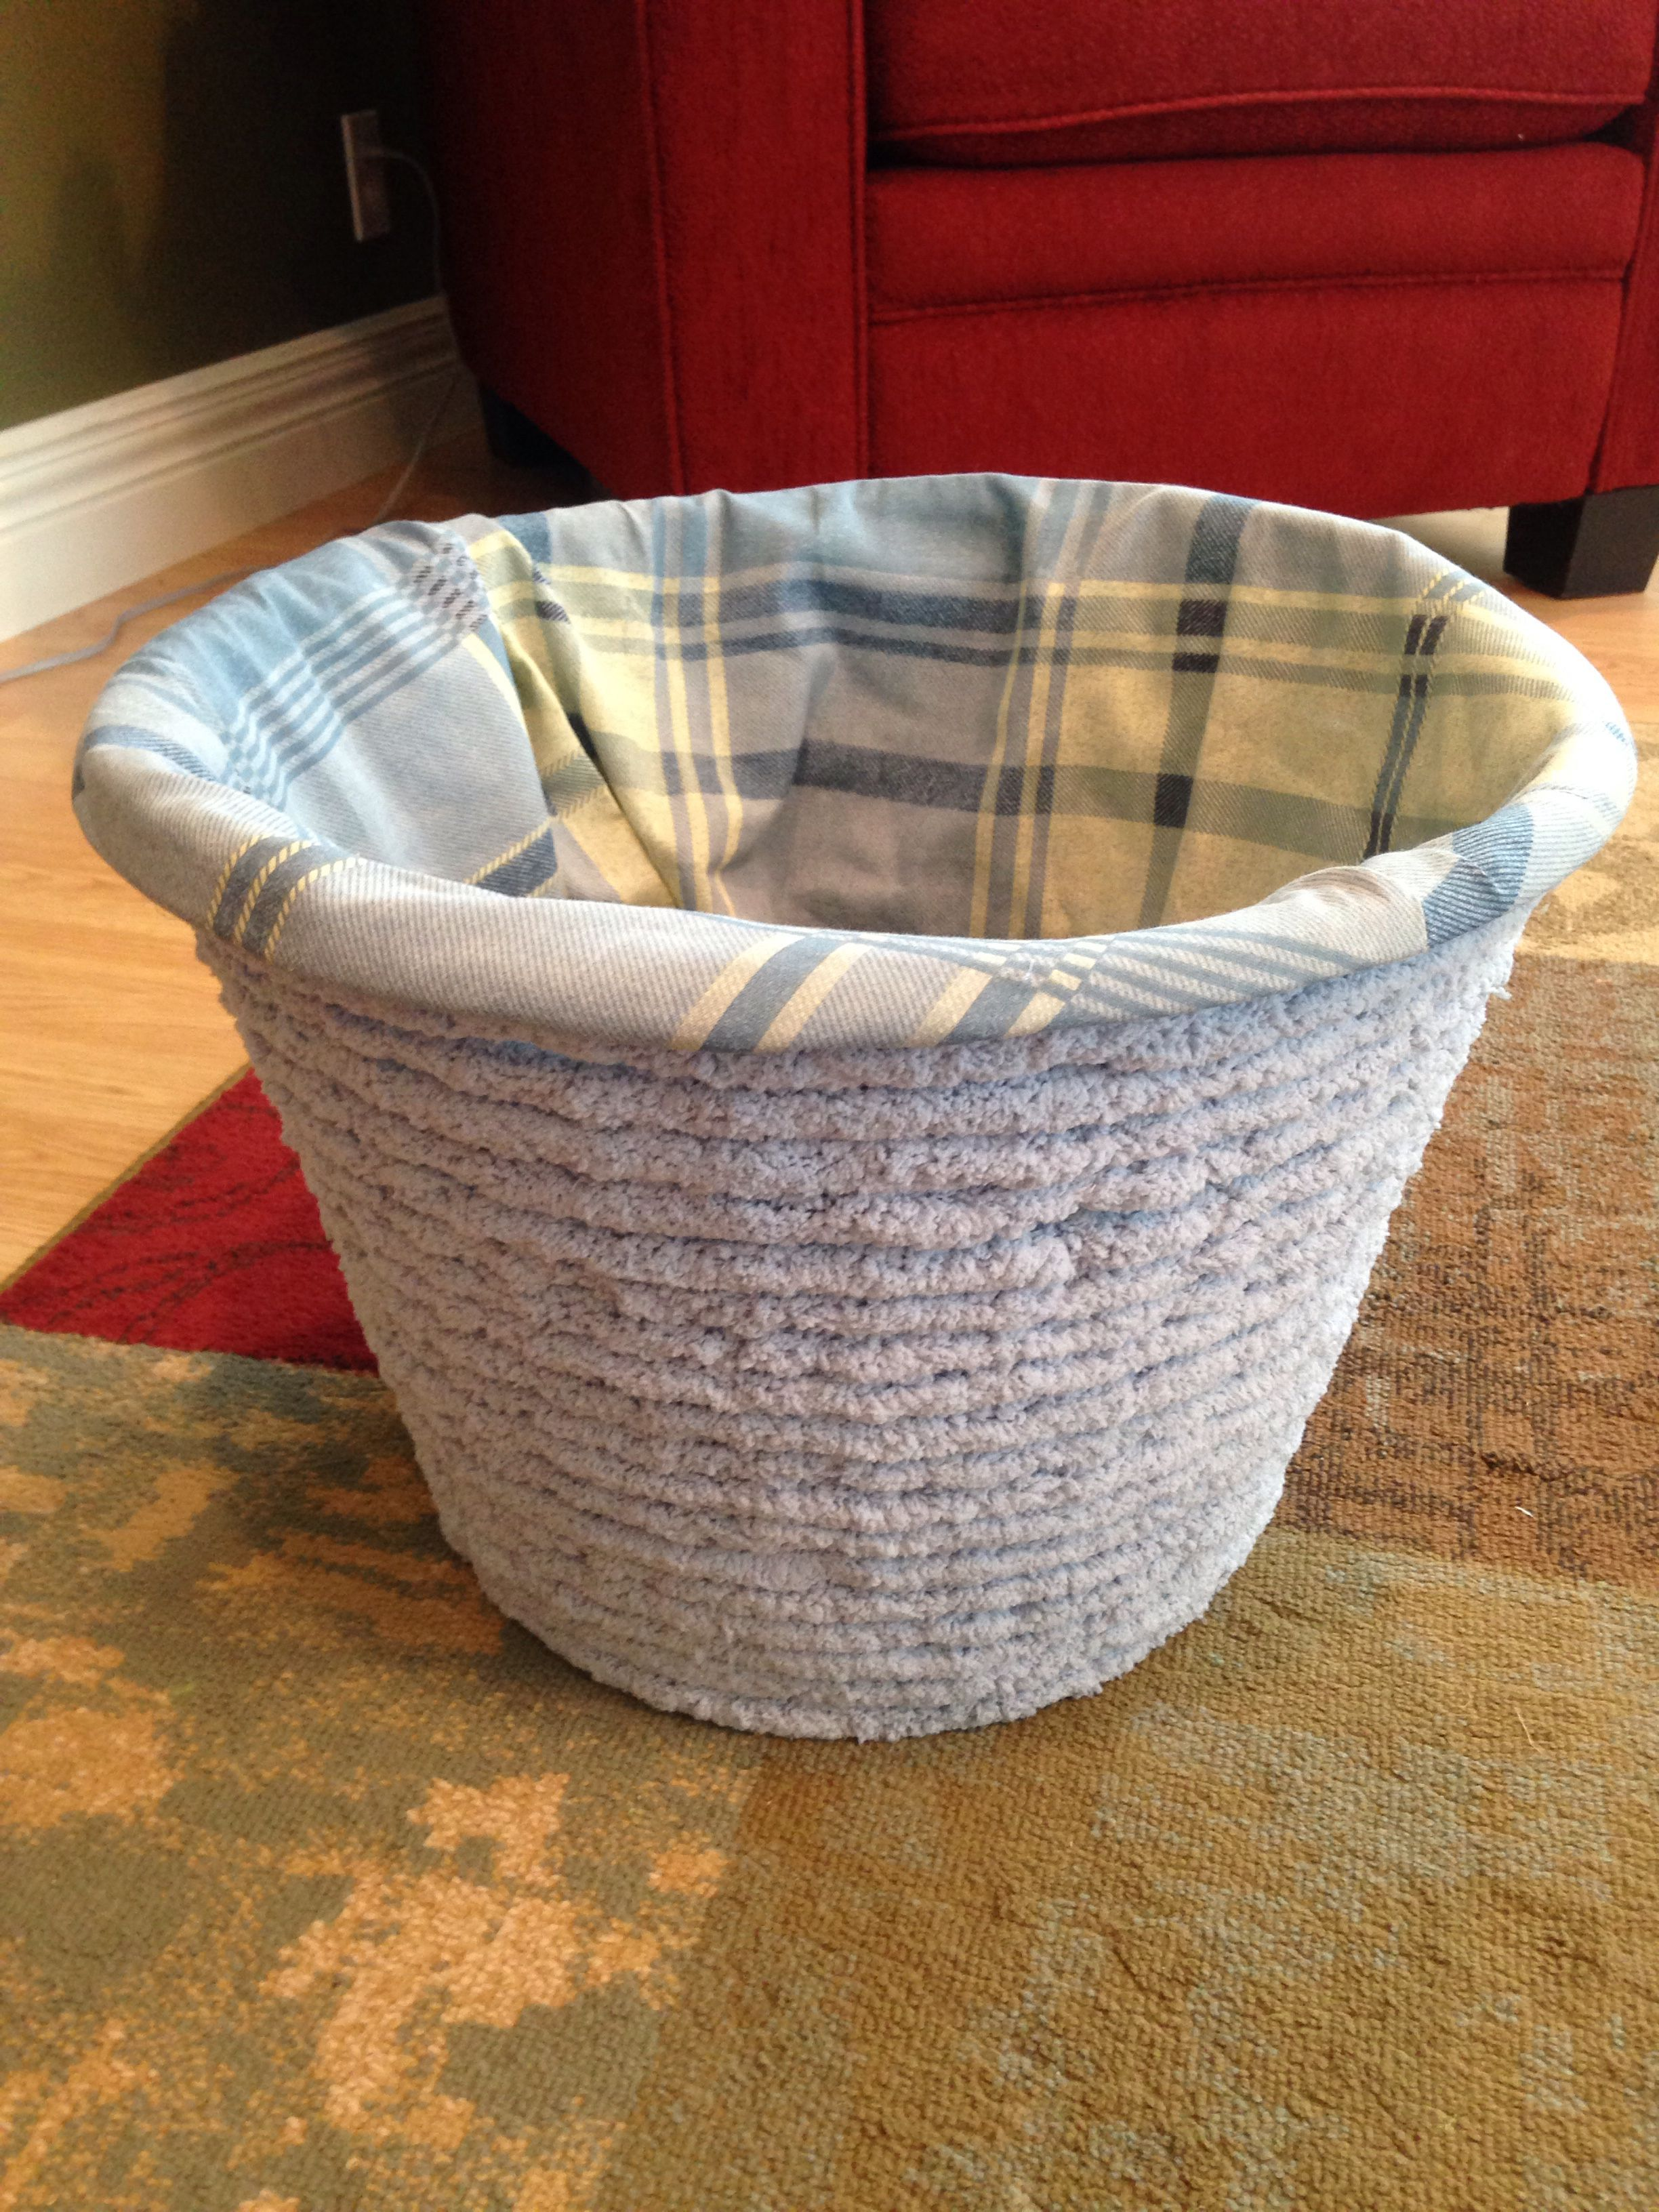 Laundry Basket Crochet Yarn Wrapped Around A Dollar Tree Basket With An Old Pillow Case Inside Basket Laundry Dollar Tree Baskets Old Pillows Basket